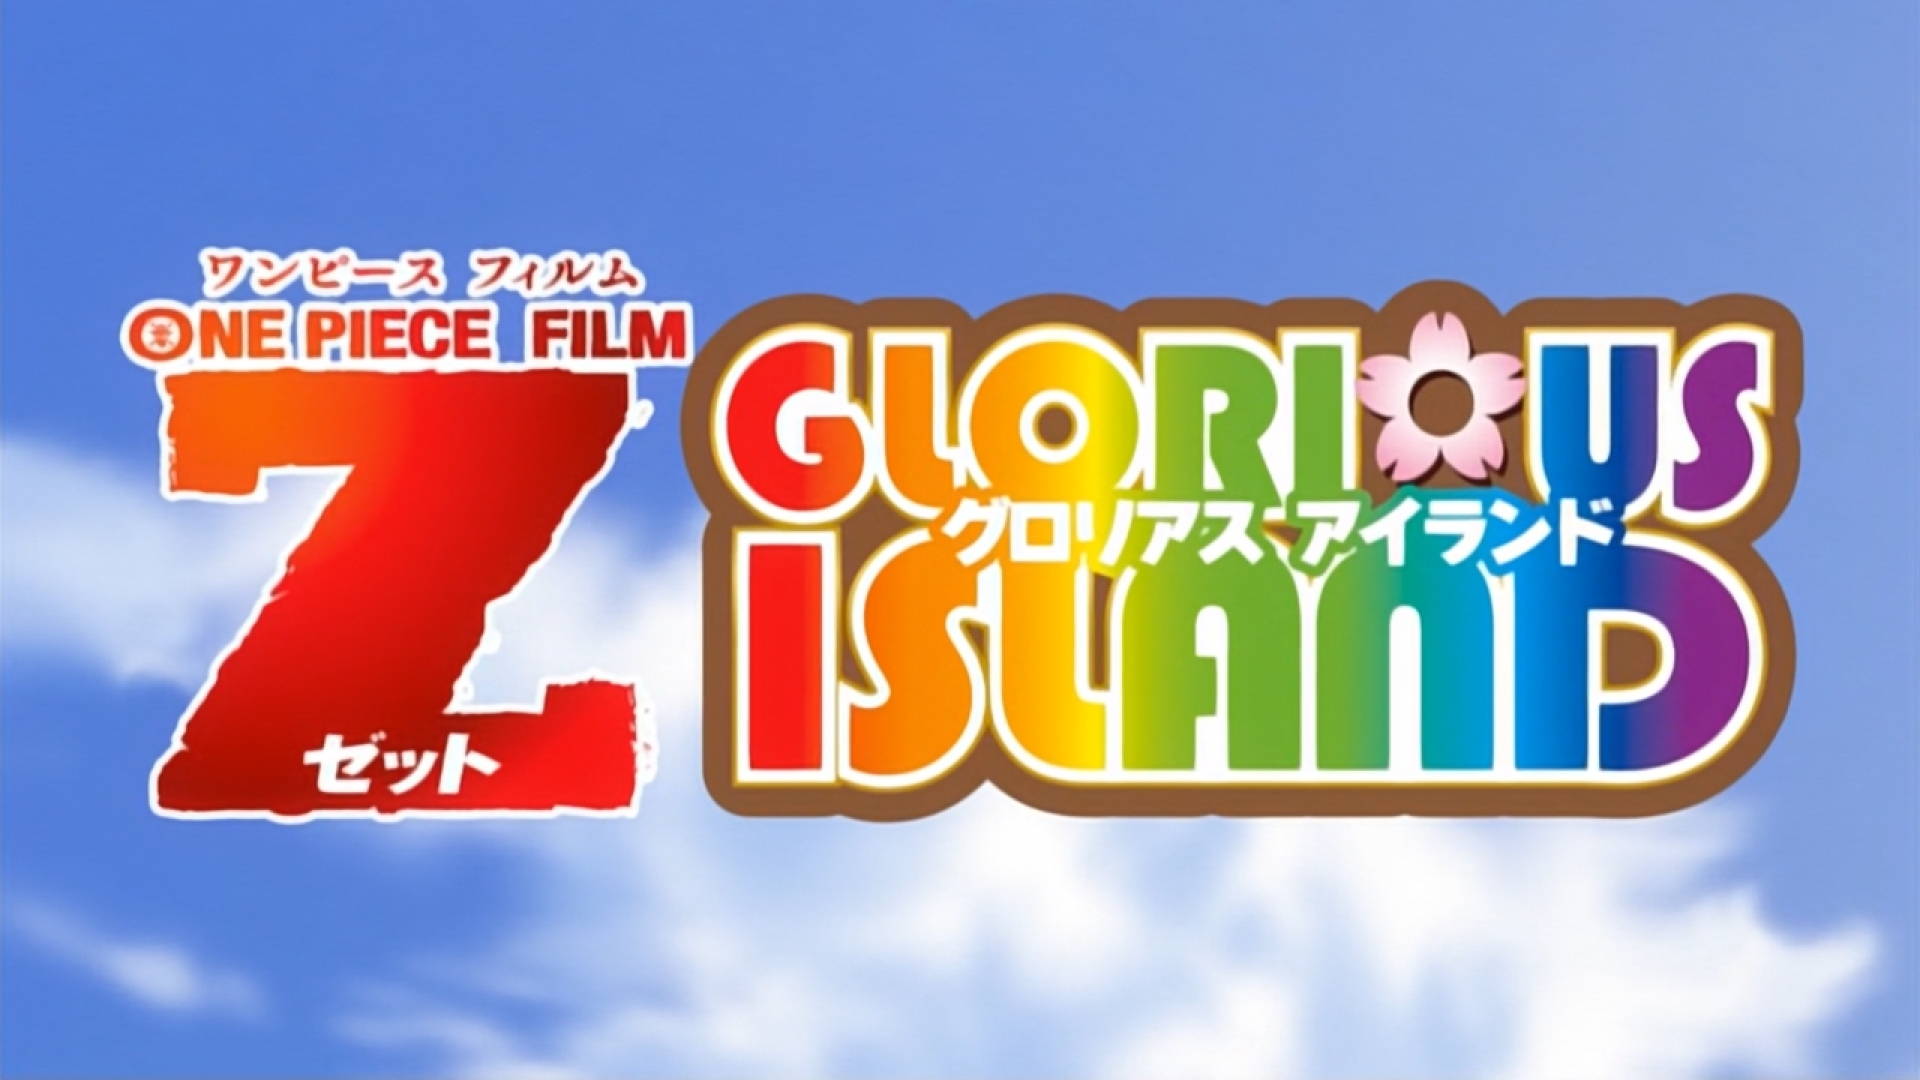 One-Piece Special : Glorious Island News background